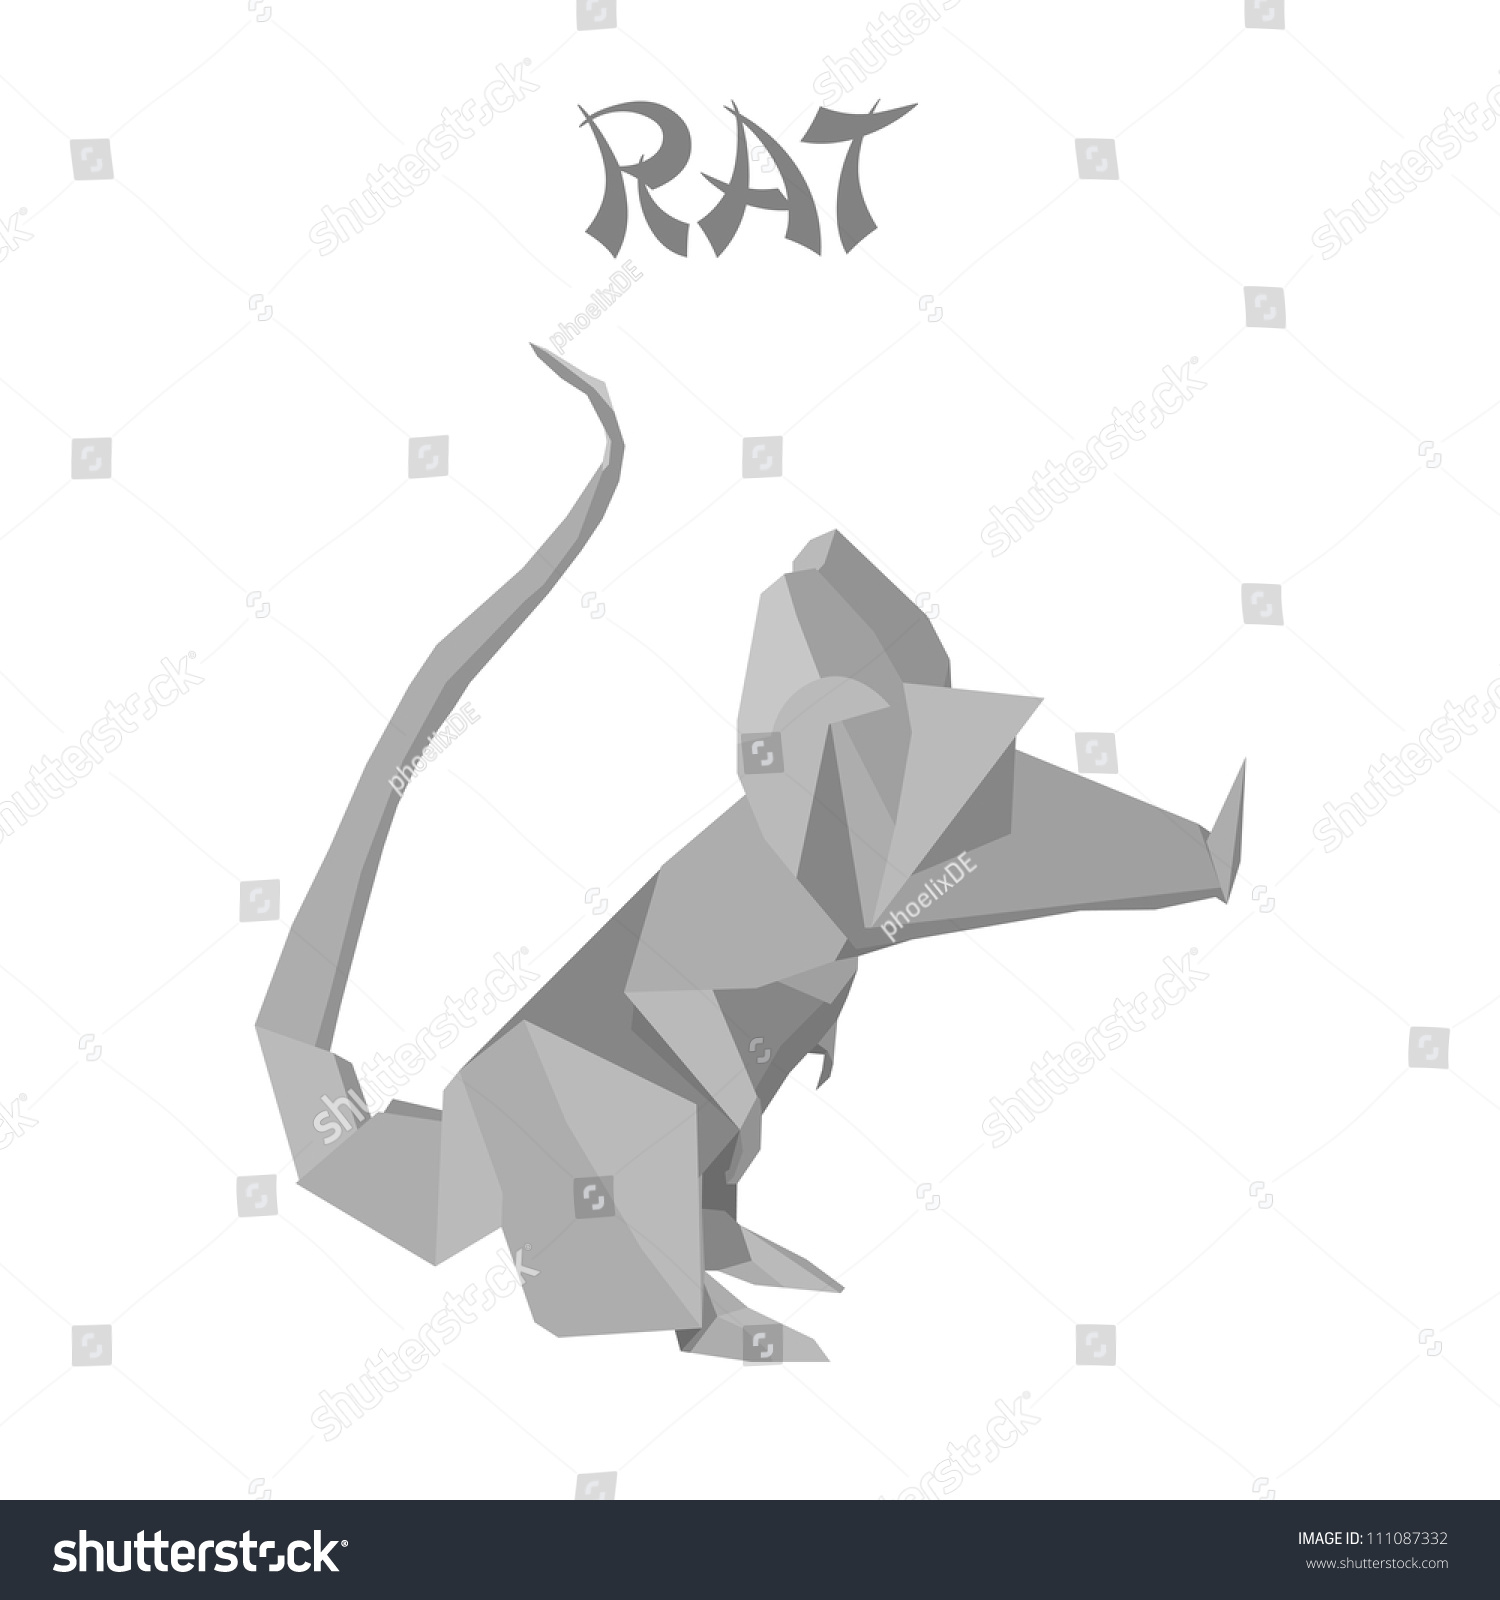 Illustration origami rat stock vector 111087332 shutterstock jeuxipadfo Images